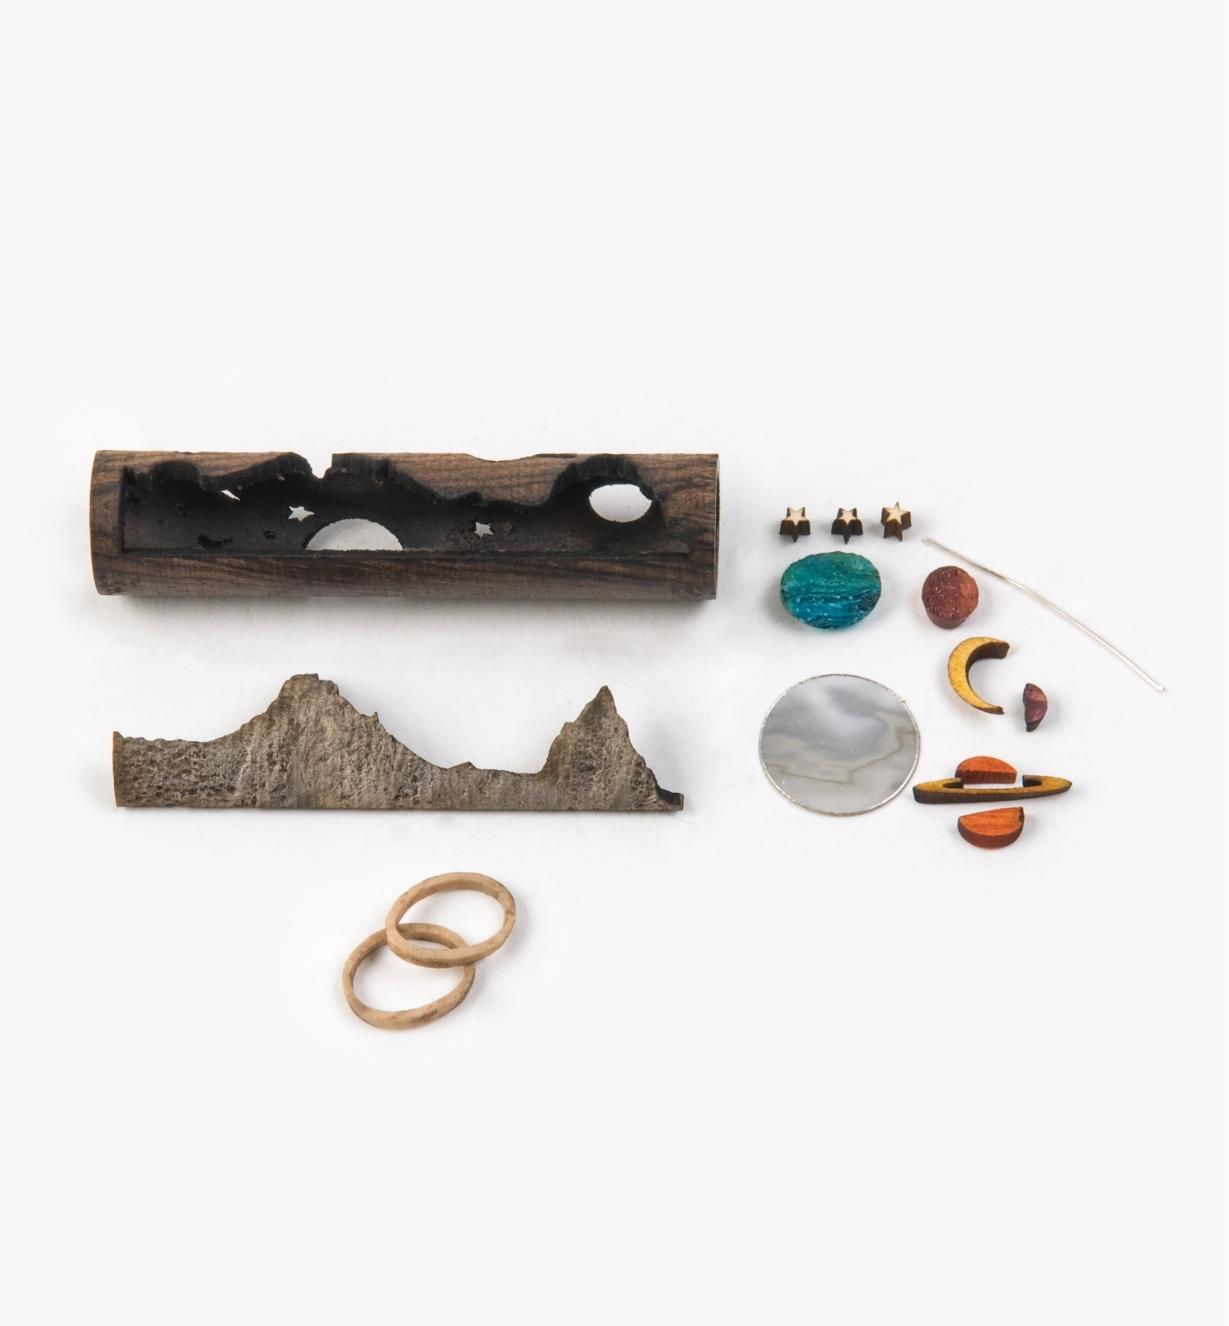 88K8220 - Moonscape Inlay Kit, Sierra